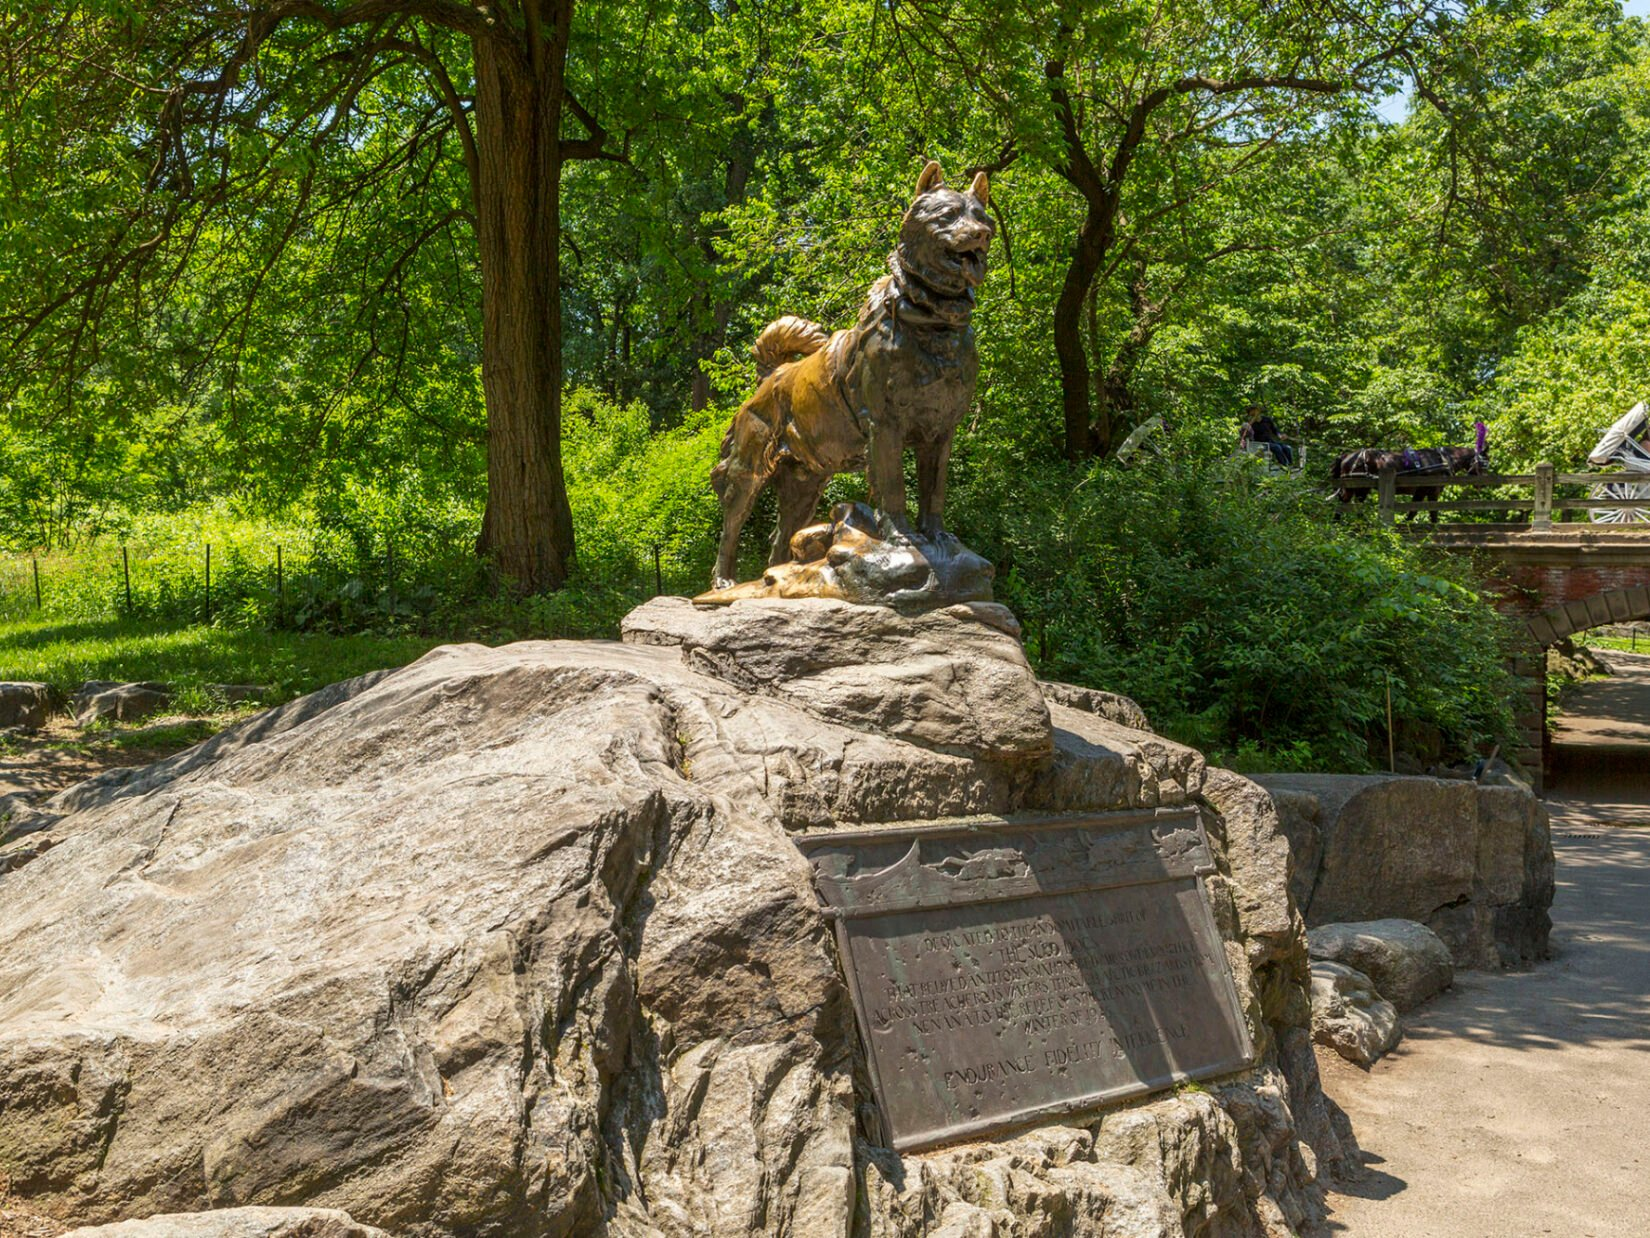 A photograph of the statue perched on an outcropping and the accompanying plaque